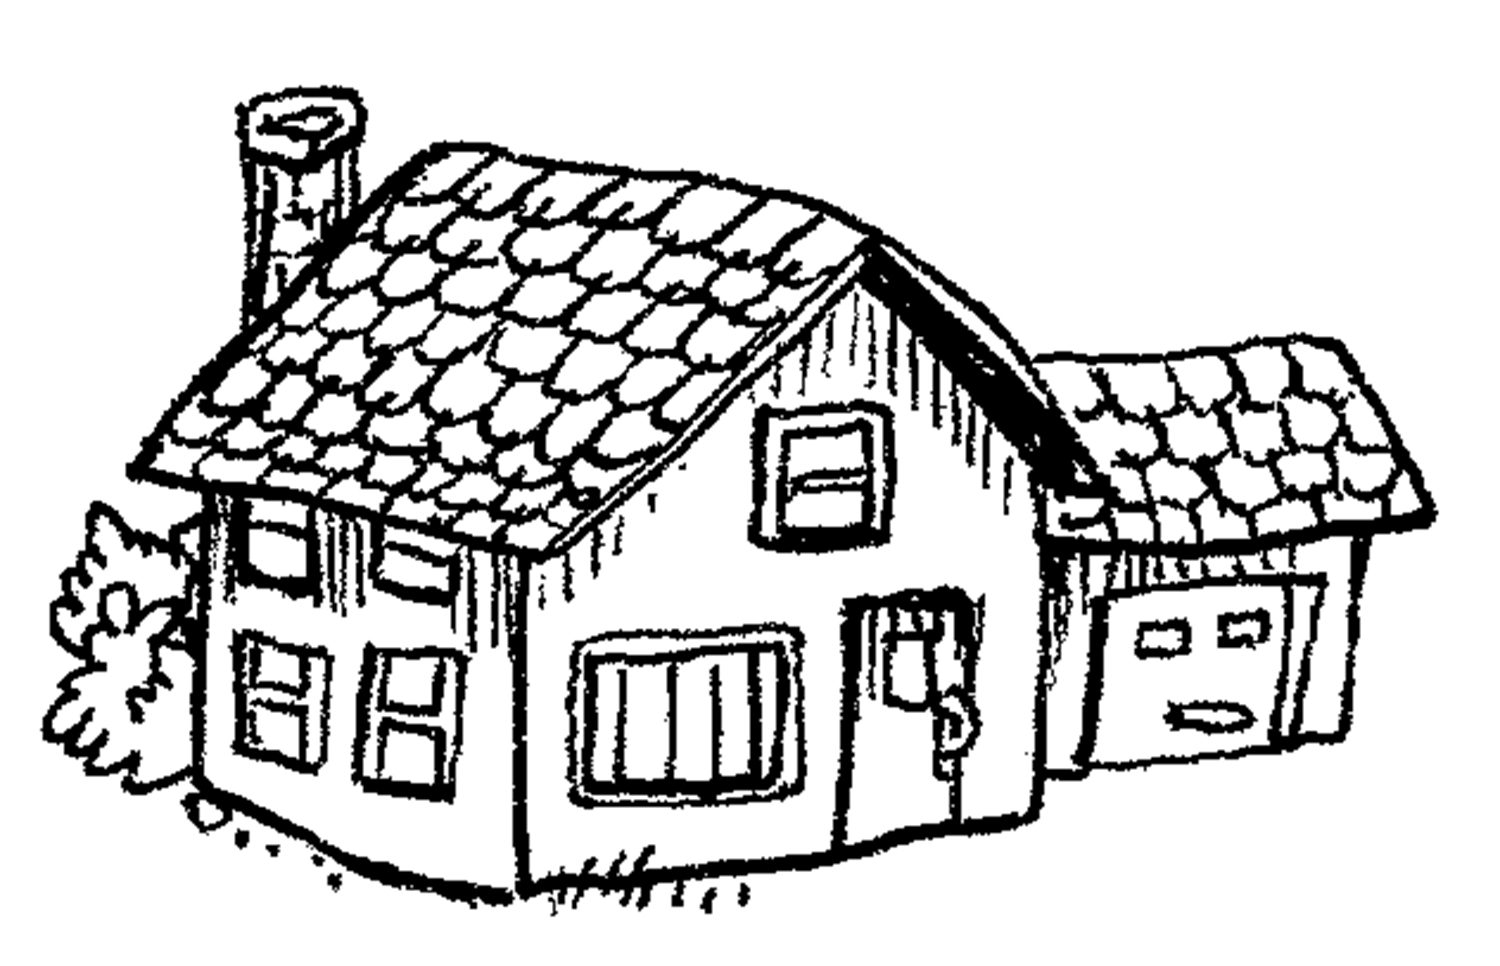 home coloring image clipart panda free clipart images image home coloring